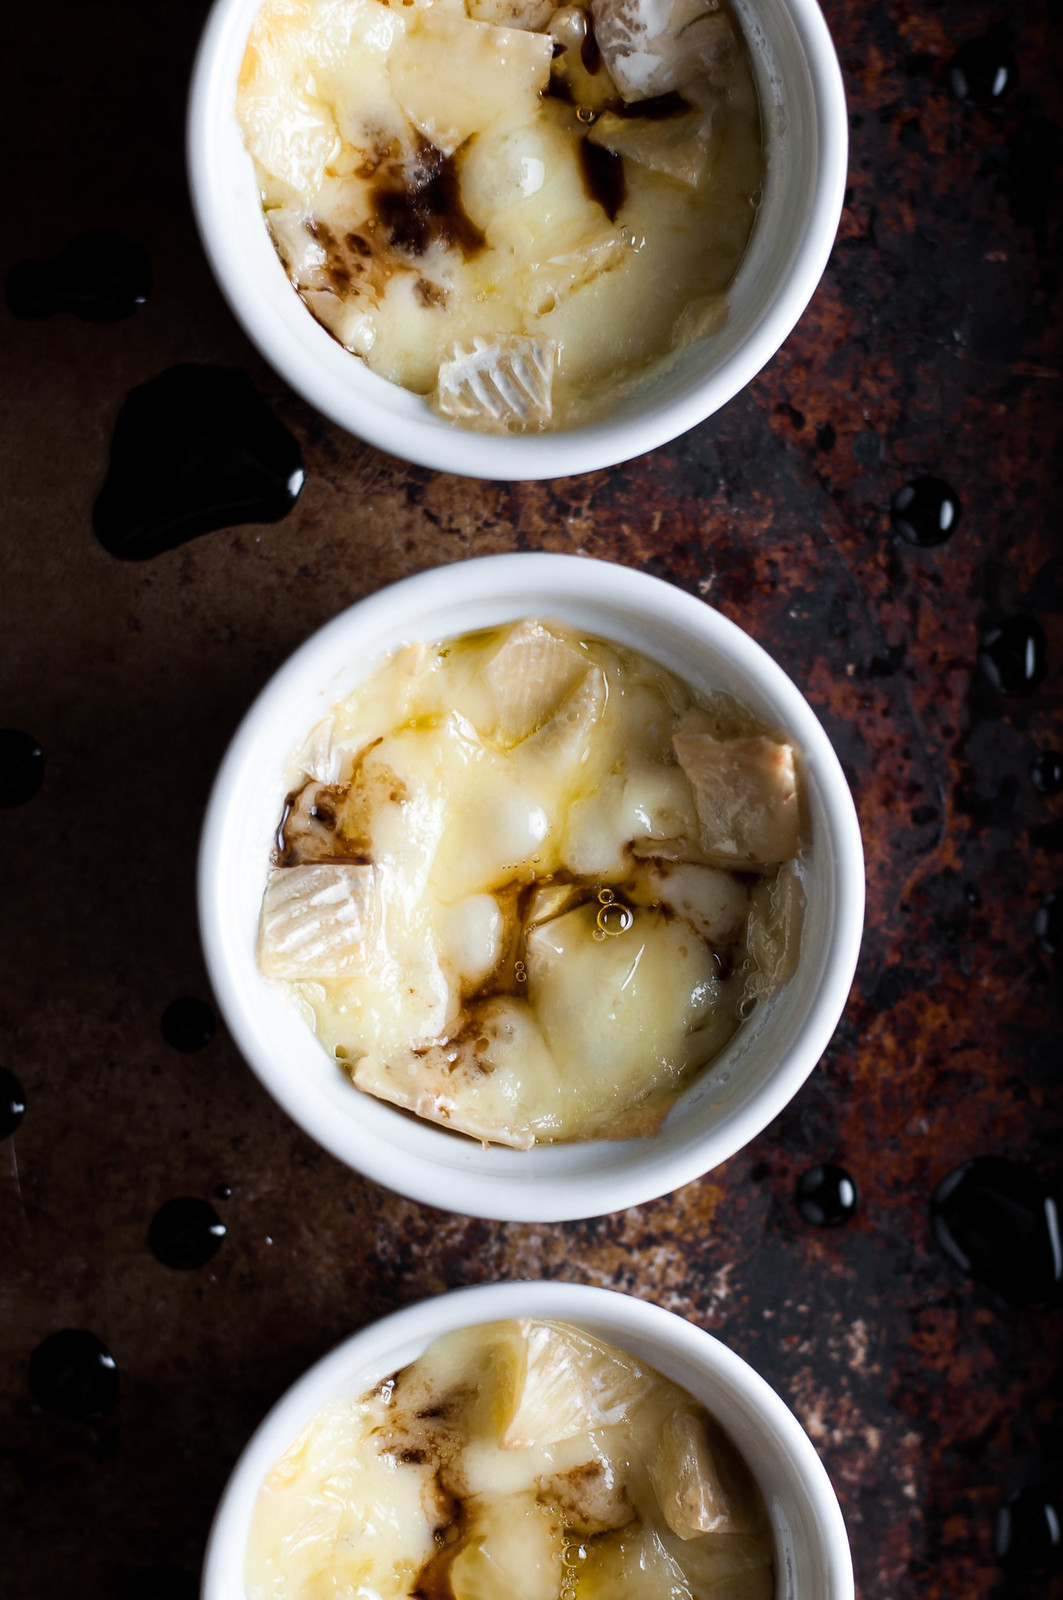 Mini crustless baked brie - 2 ingredients, 15 minutes, gluten free